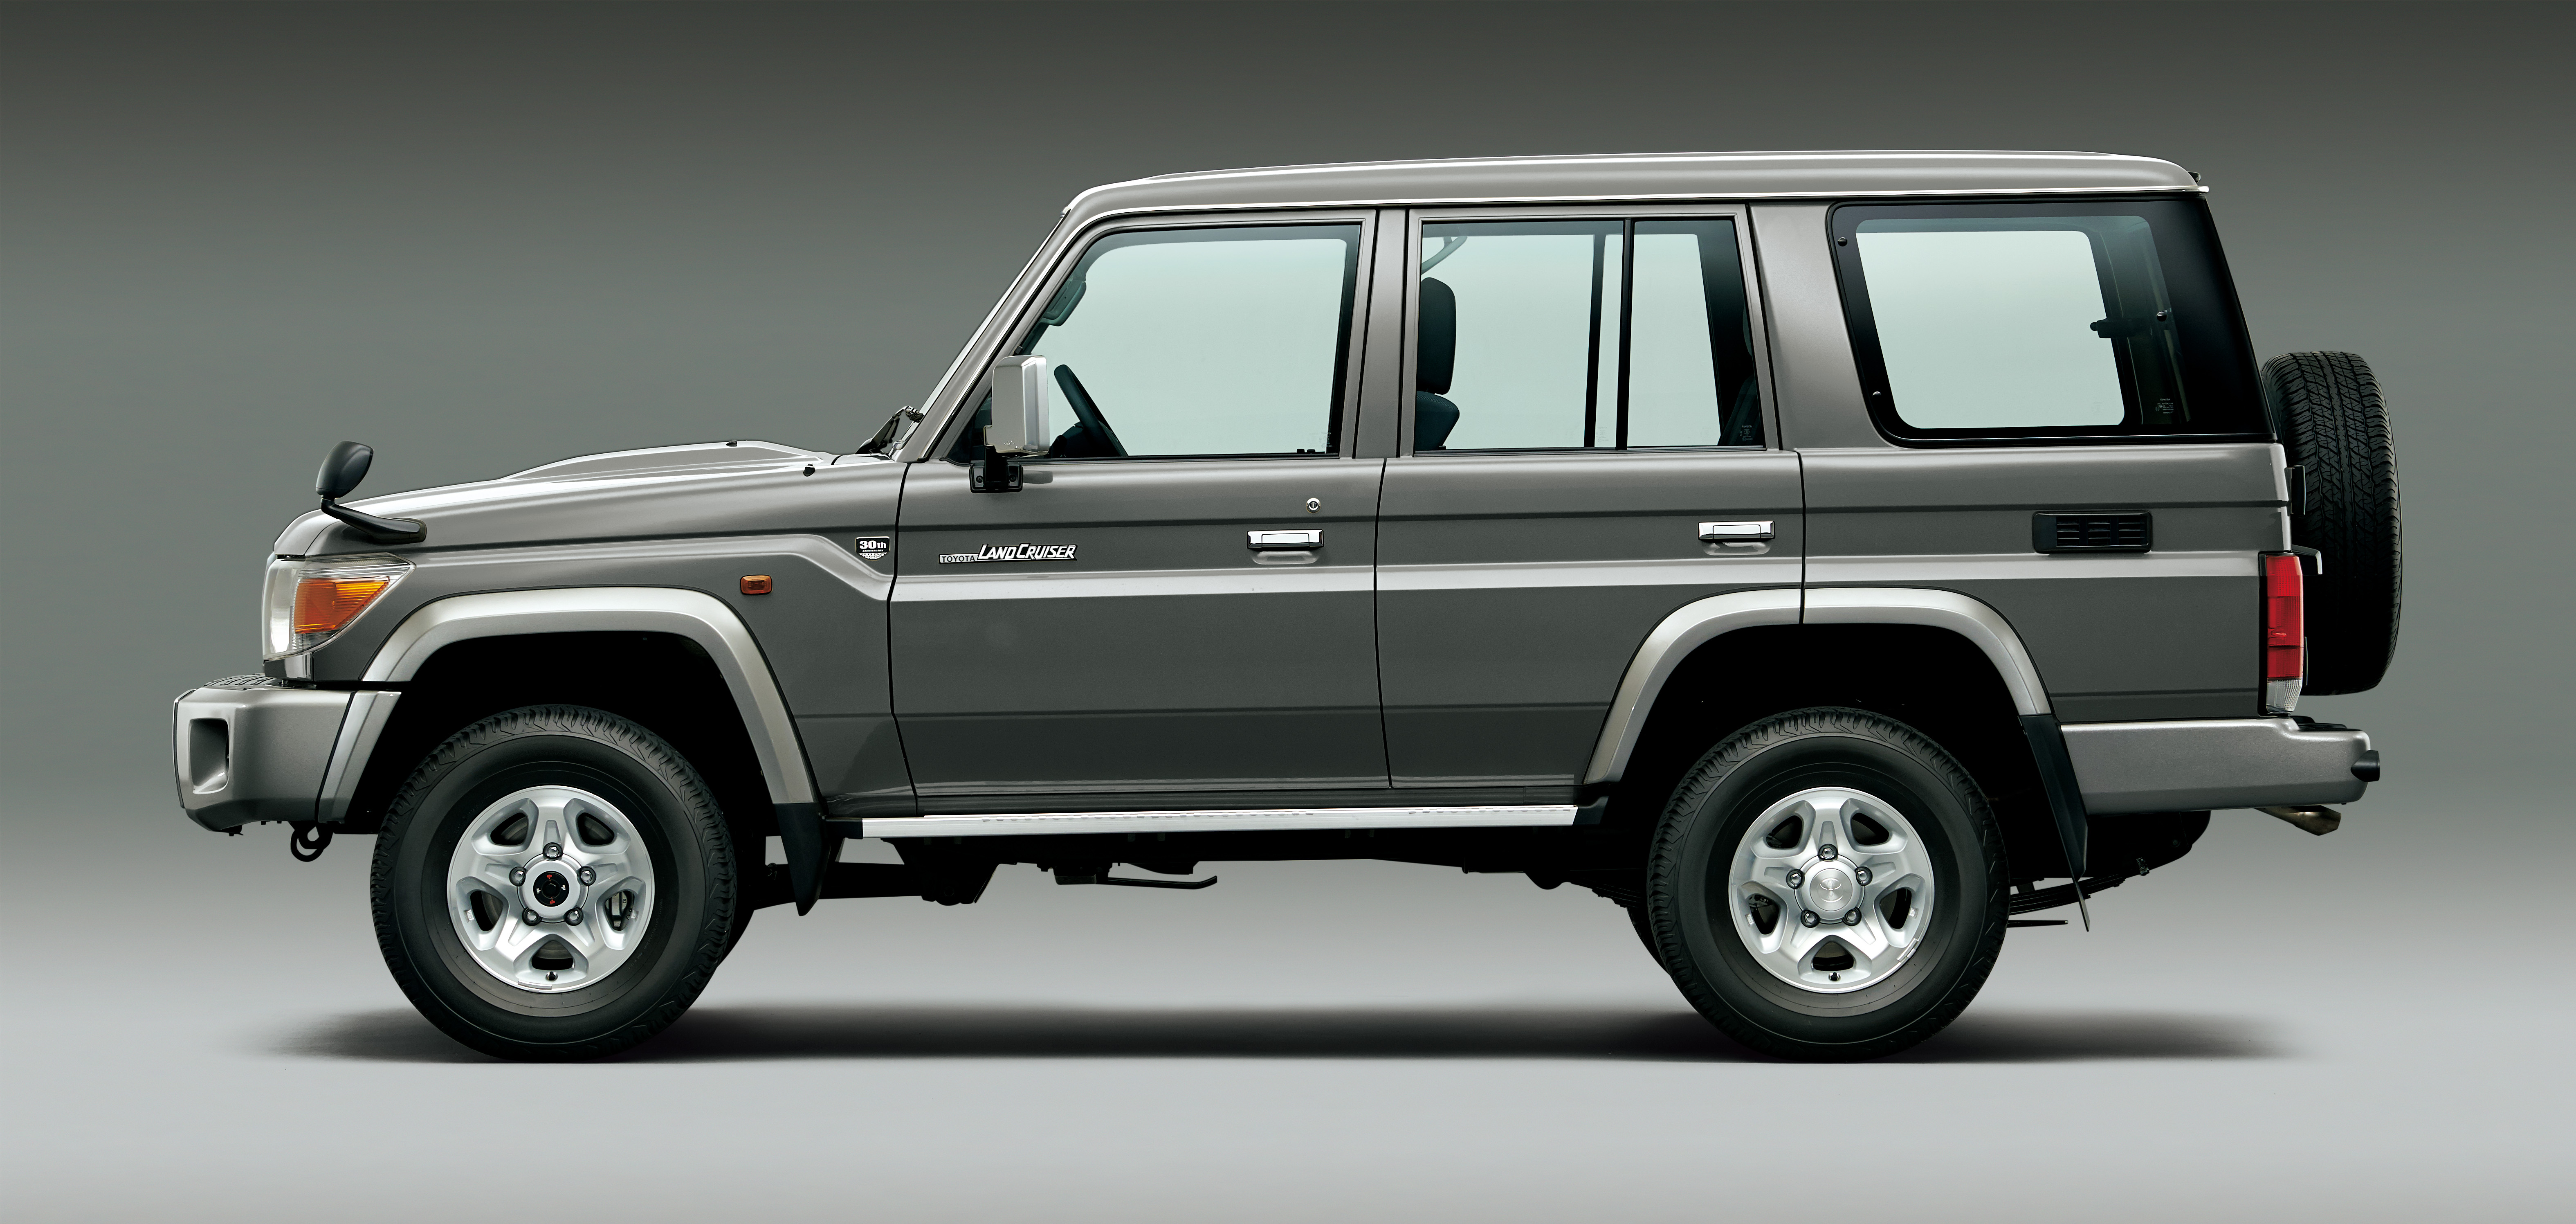 Toyota Land Cruiser 70 Rereleased In Japan For 1 Year